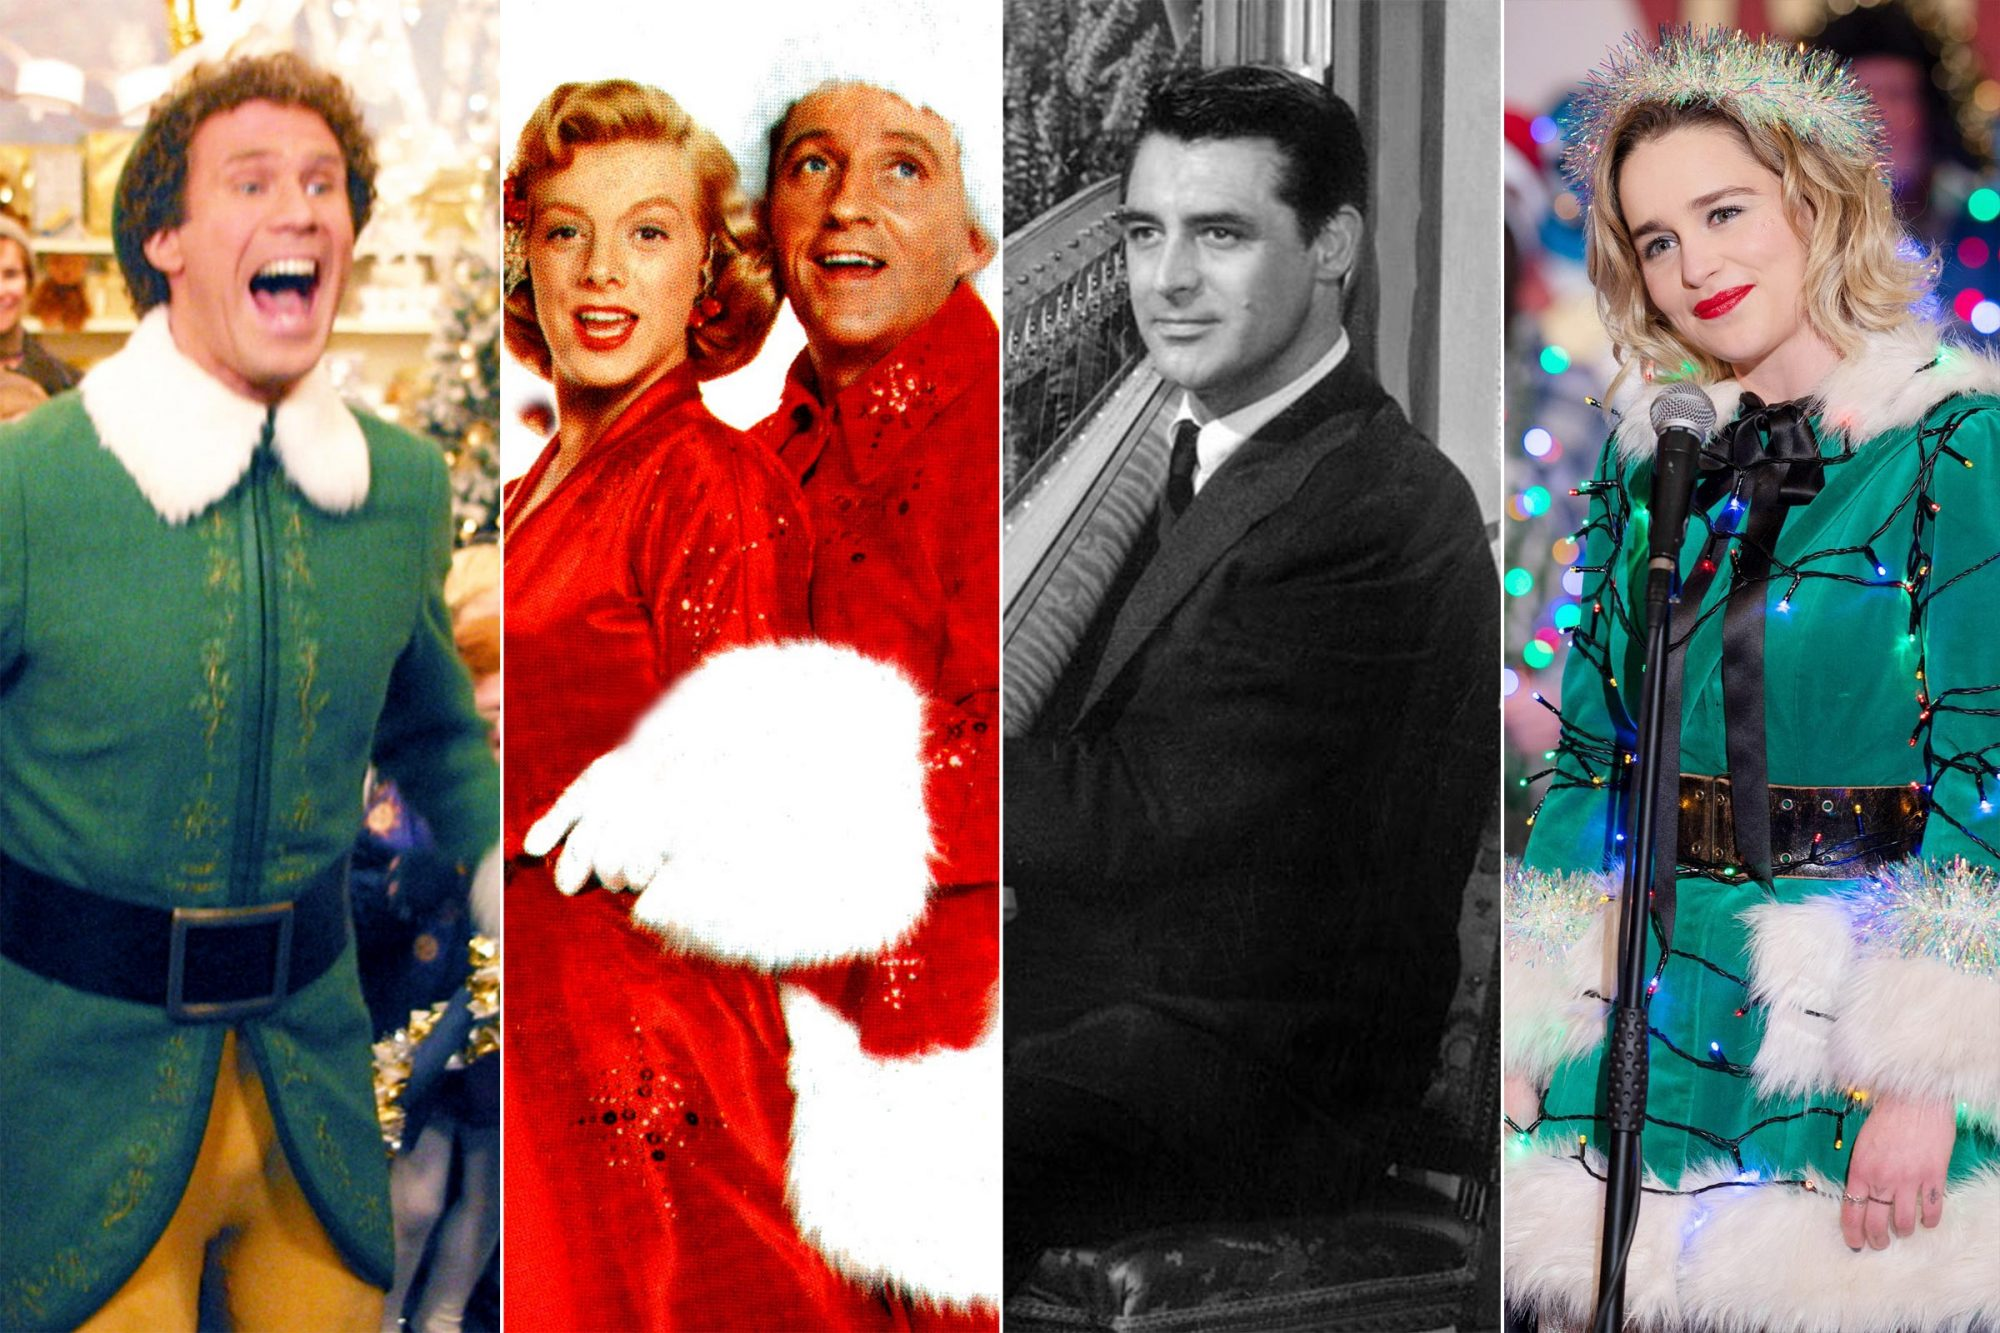 ELF, Will Ferrell, 2003, (c) New Line/courtesy Everett Collection WHITE CHRISTMAS, Vera-Ellen, Danny Kaye, Rosemary Clooney, Bing Crosby, 1954 THE BISHOP'S WIFE, from left: Cary Grant, 1947 LAST CHRISTMAS, Emilia Clarke, 2019. ph: Jonathan Prime / © Universal / courtesy Everett Collection